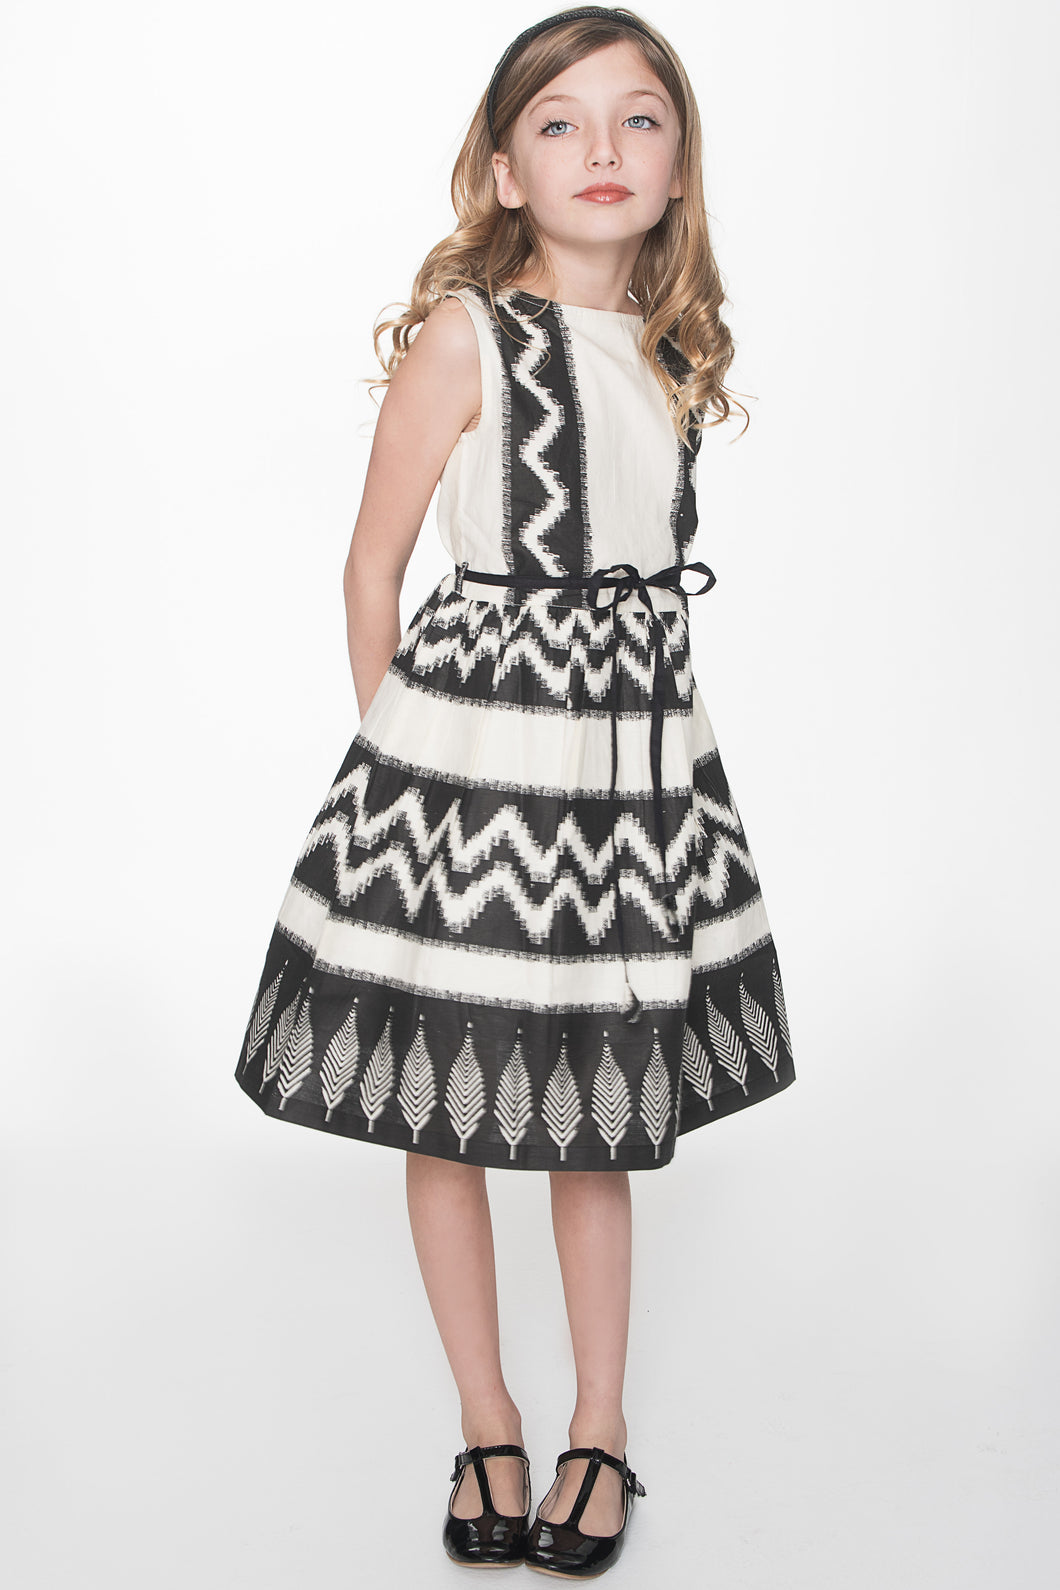 Black Tribal Print Dress - Kids Wholesale Boutique Clothing, Dress - Girls Dresses, Yo Baby Wholesale - Yo Baby